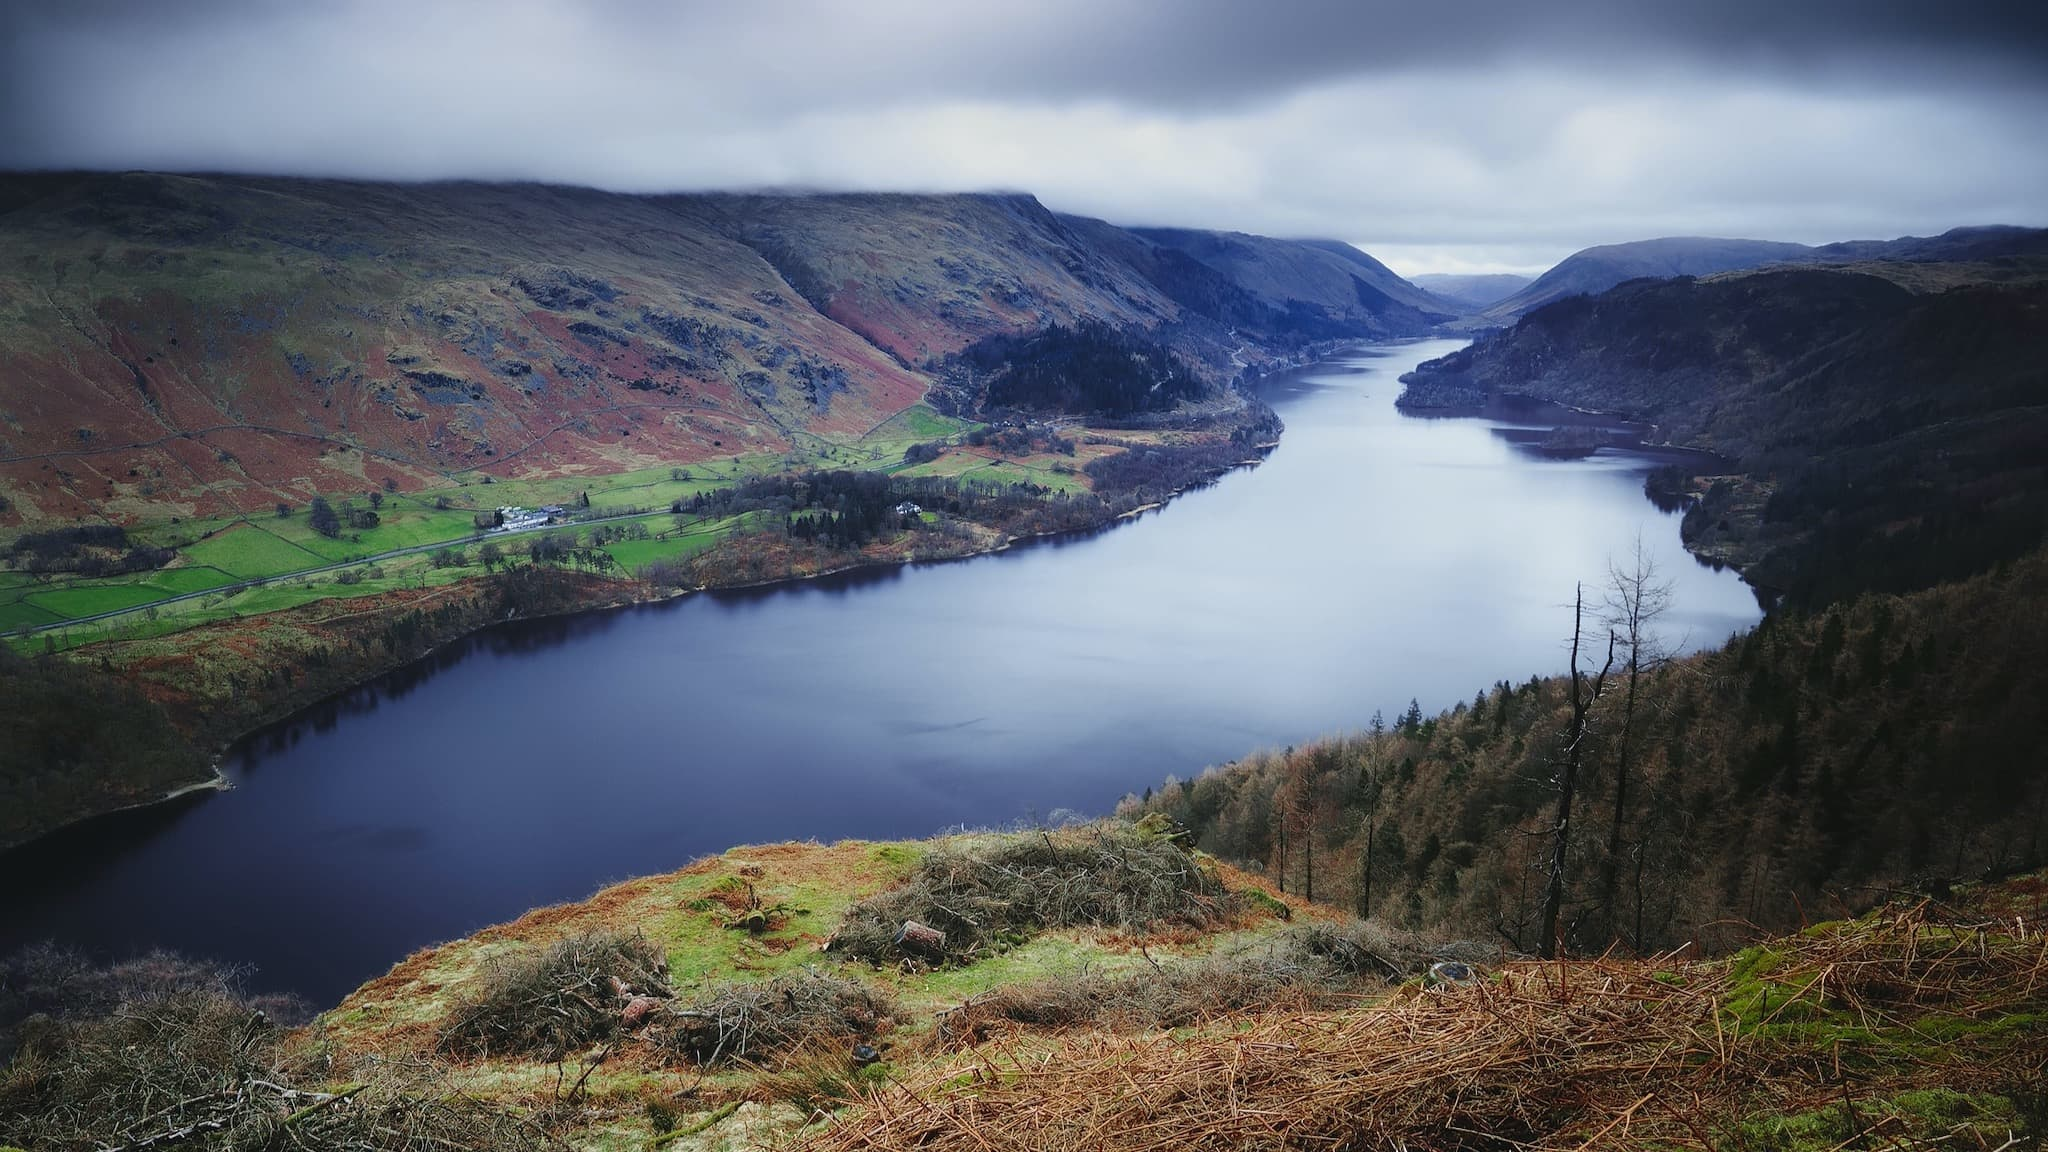 The view from Raven Crag, looking down to Thirlmere and the Helvellyn massif